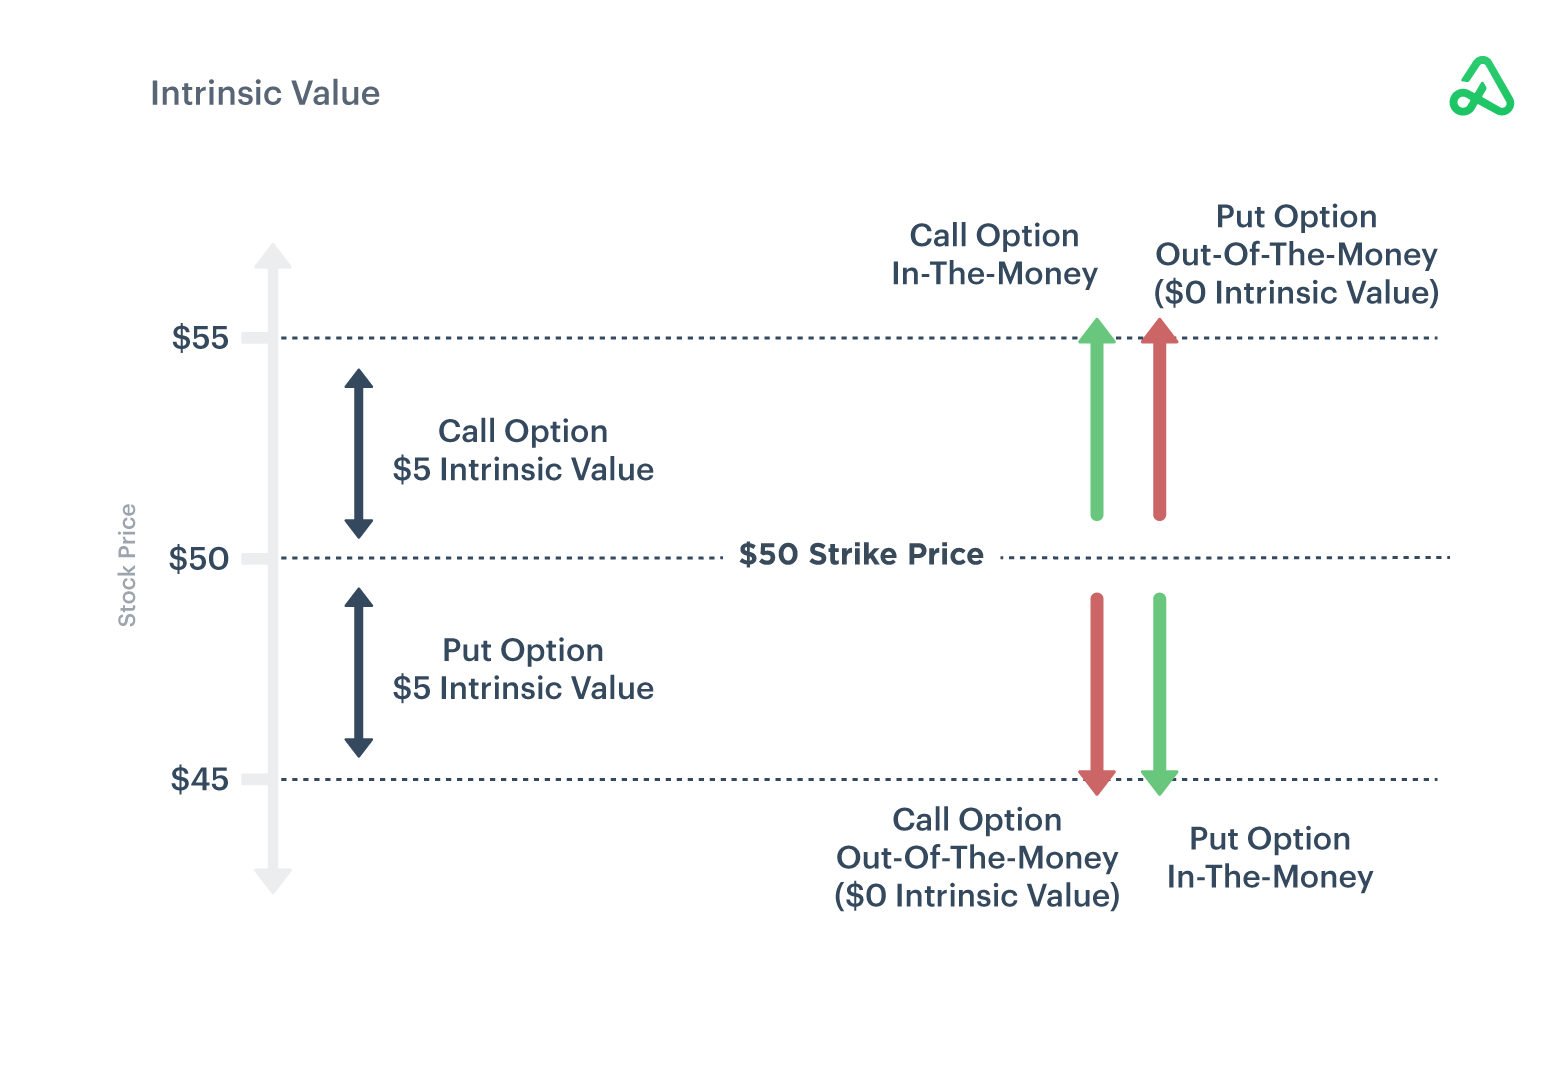 Intrinsic Value example image